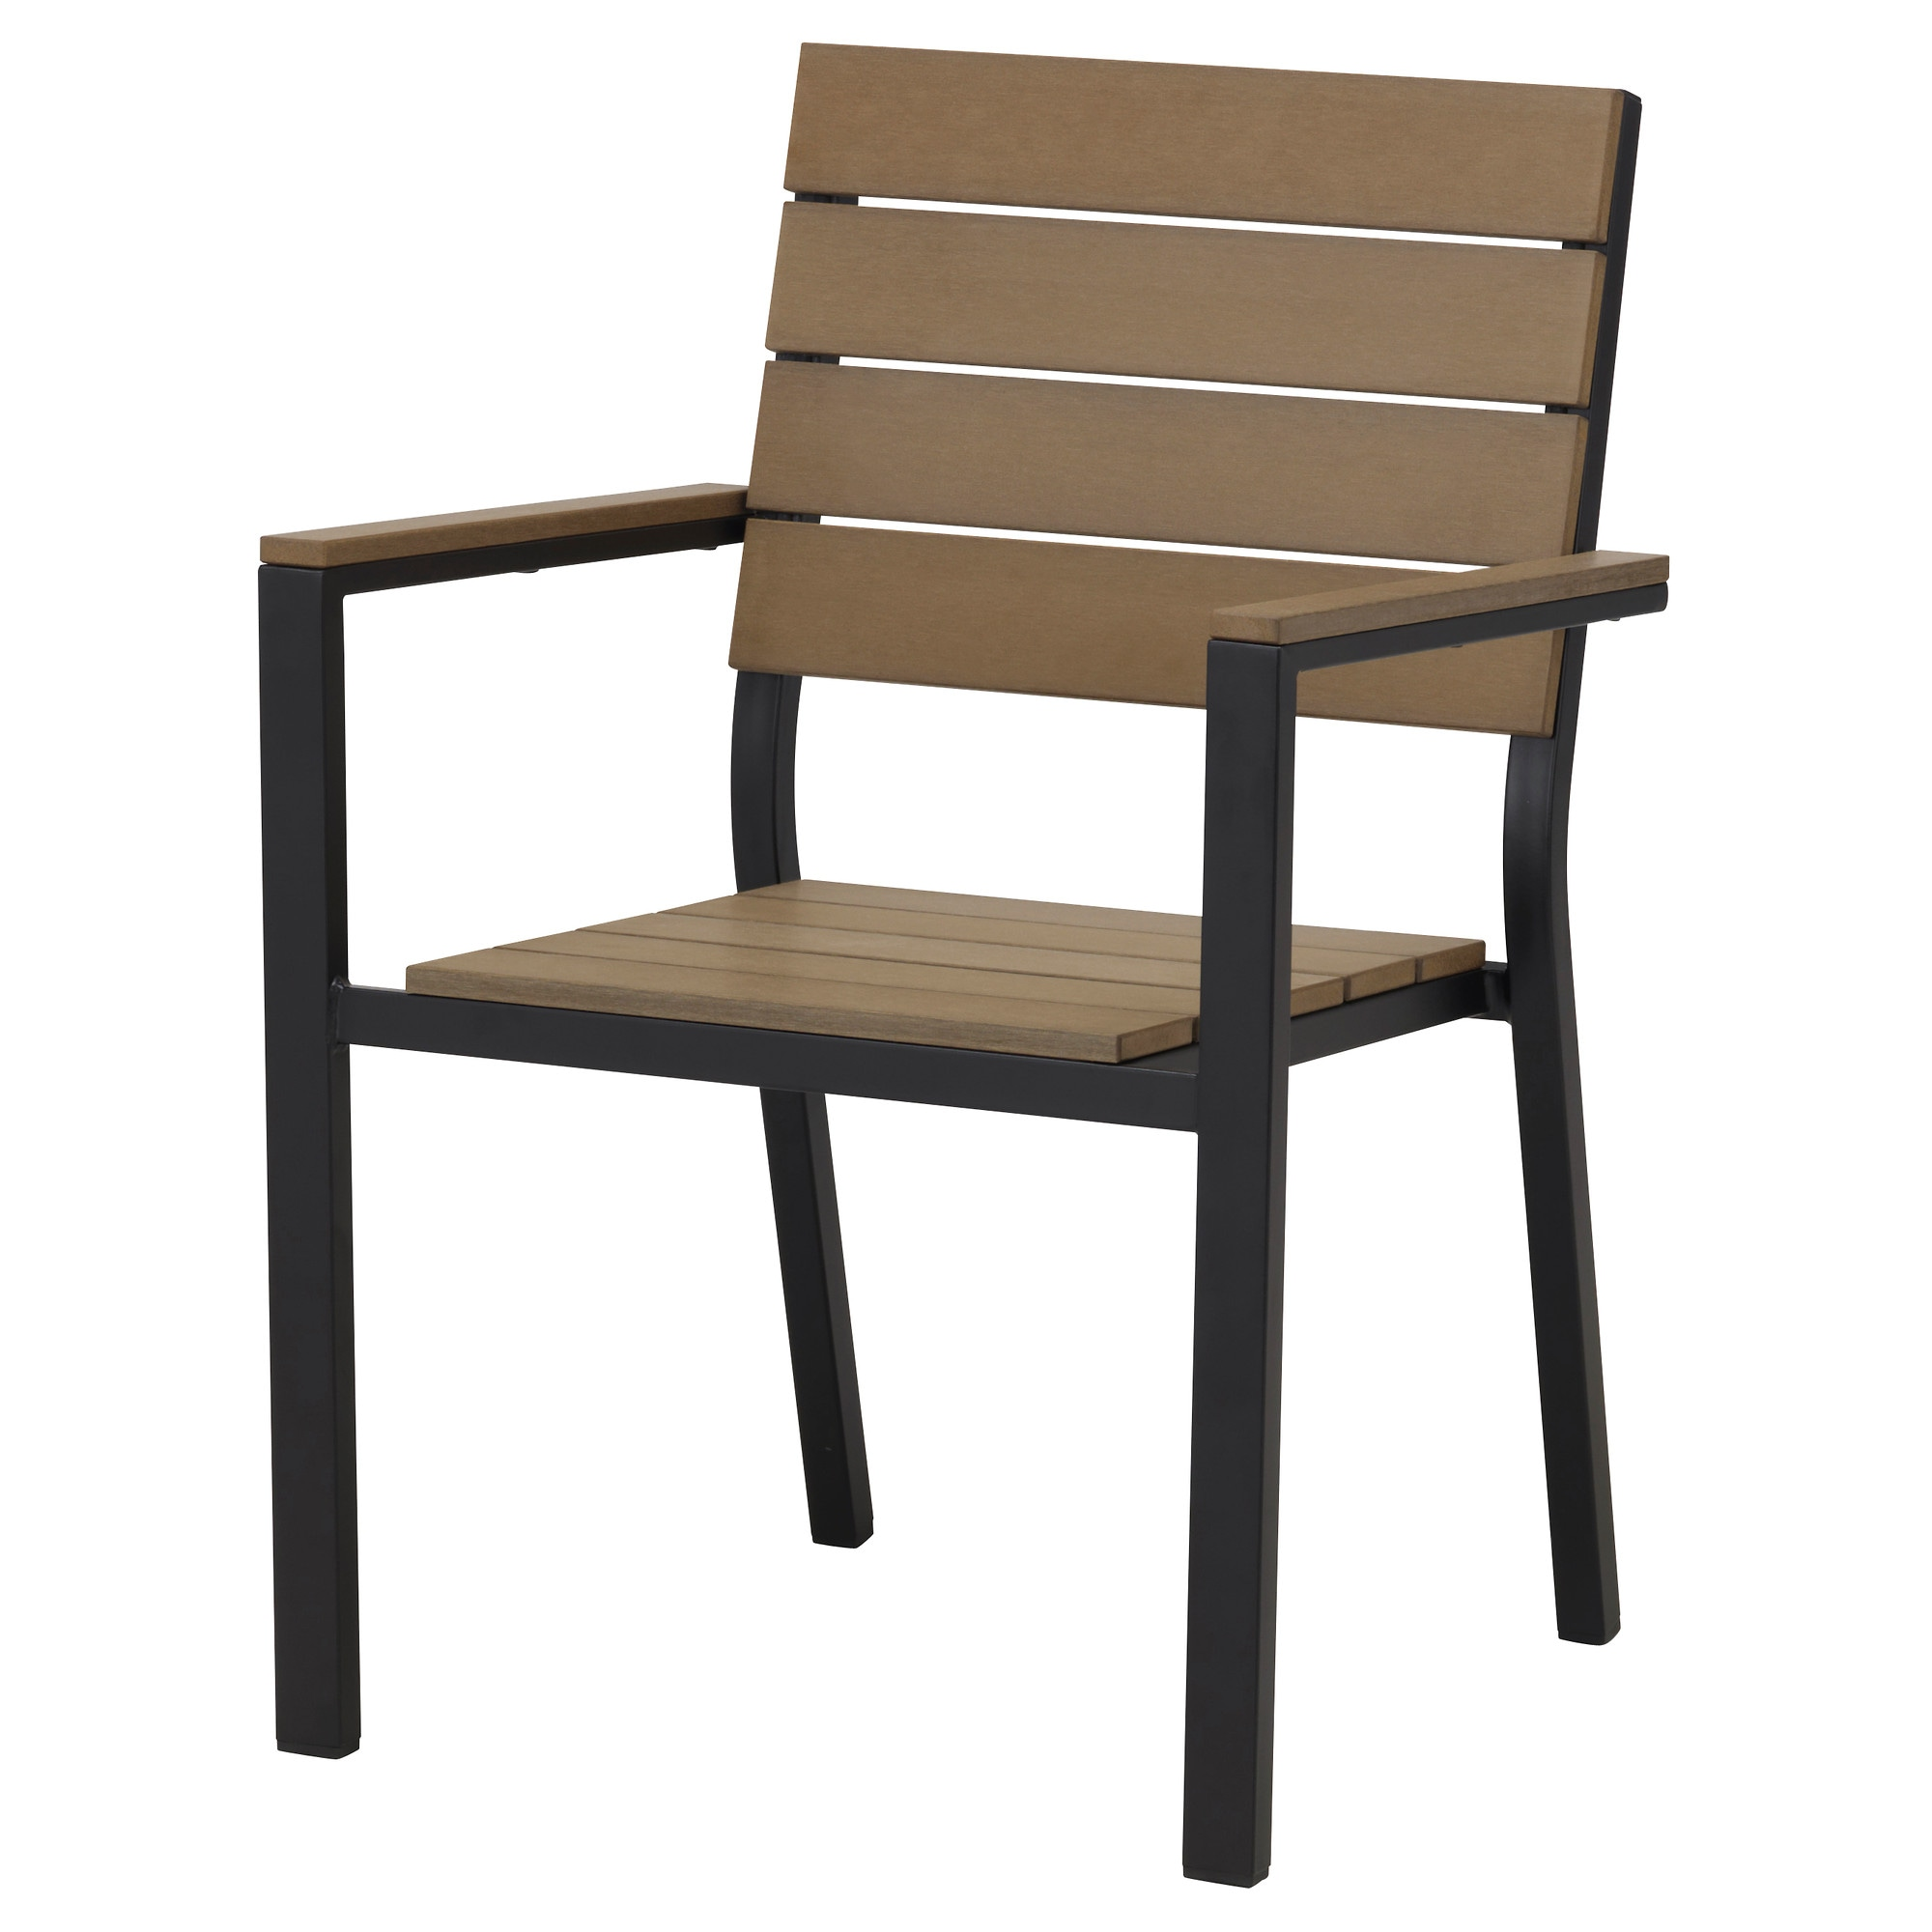 Wooden chairs with armrest - Falster Armchair Outdoor Black Brown Width 23 1 4 Depth